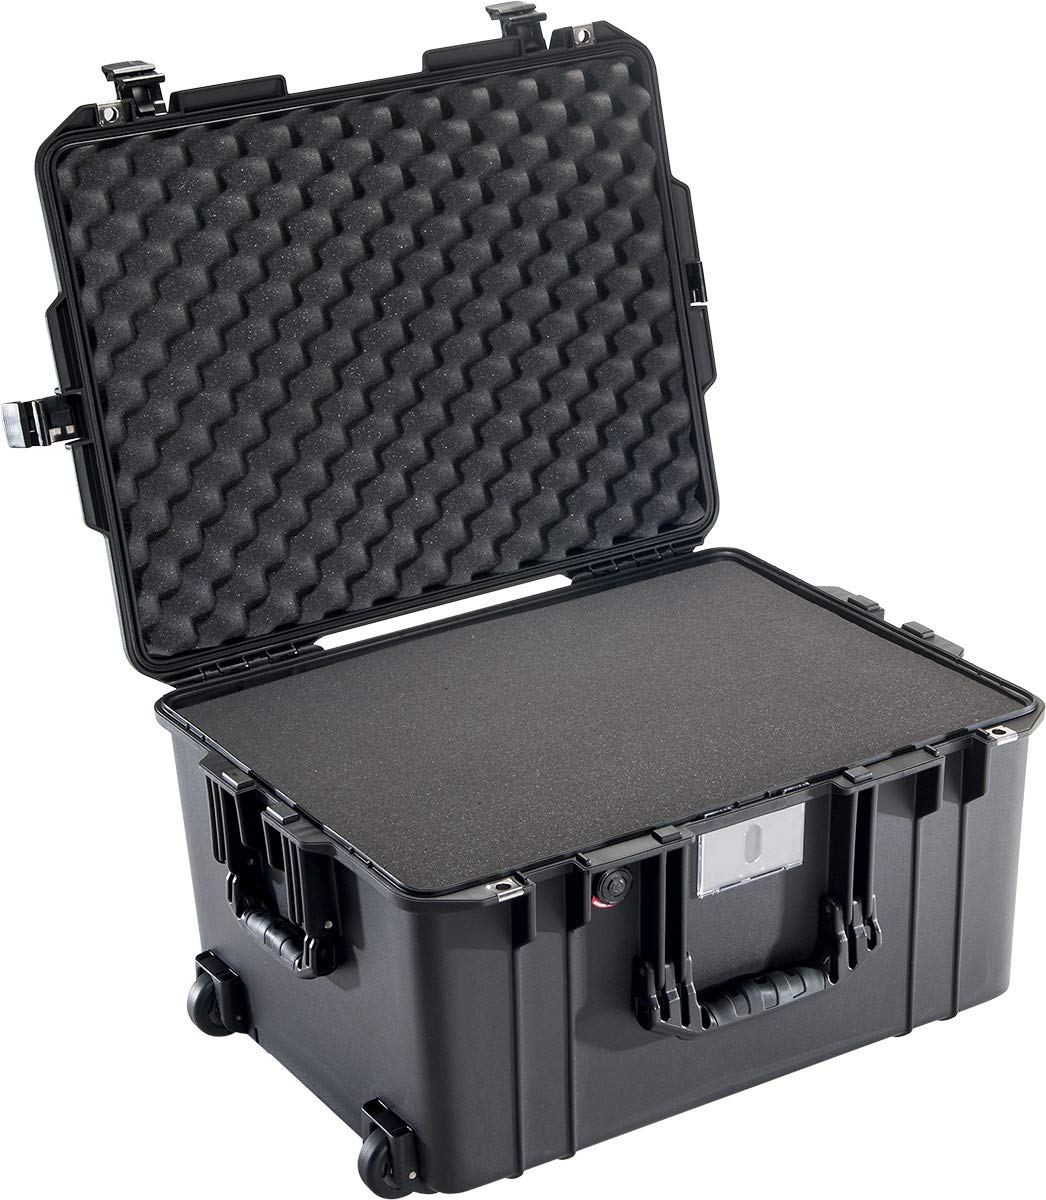 Pelican Air 1607 Case with Foam